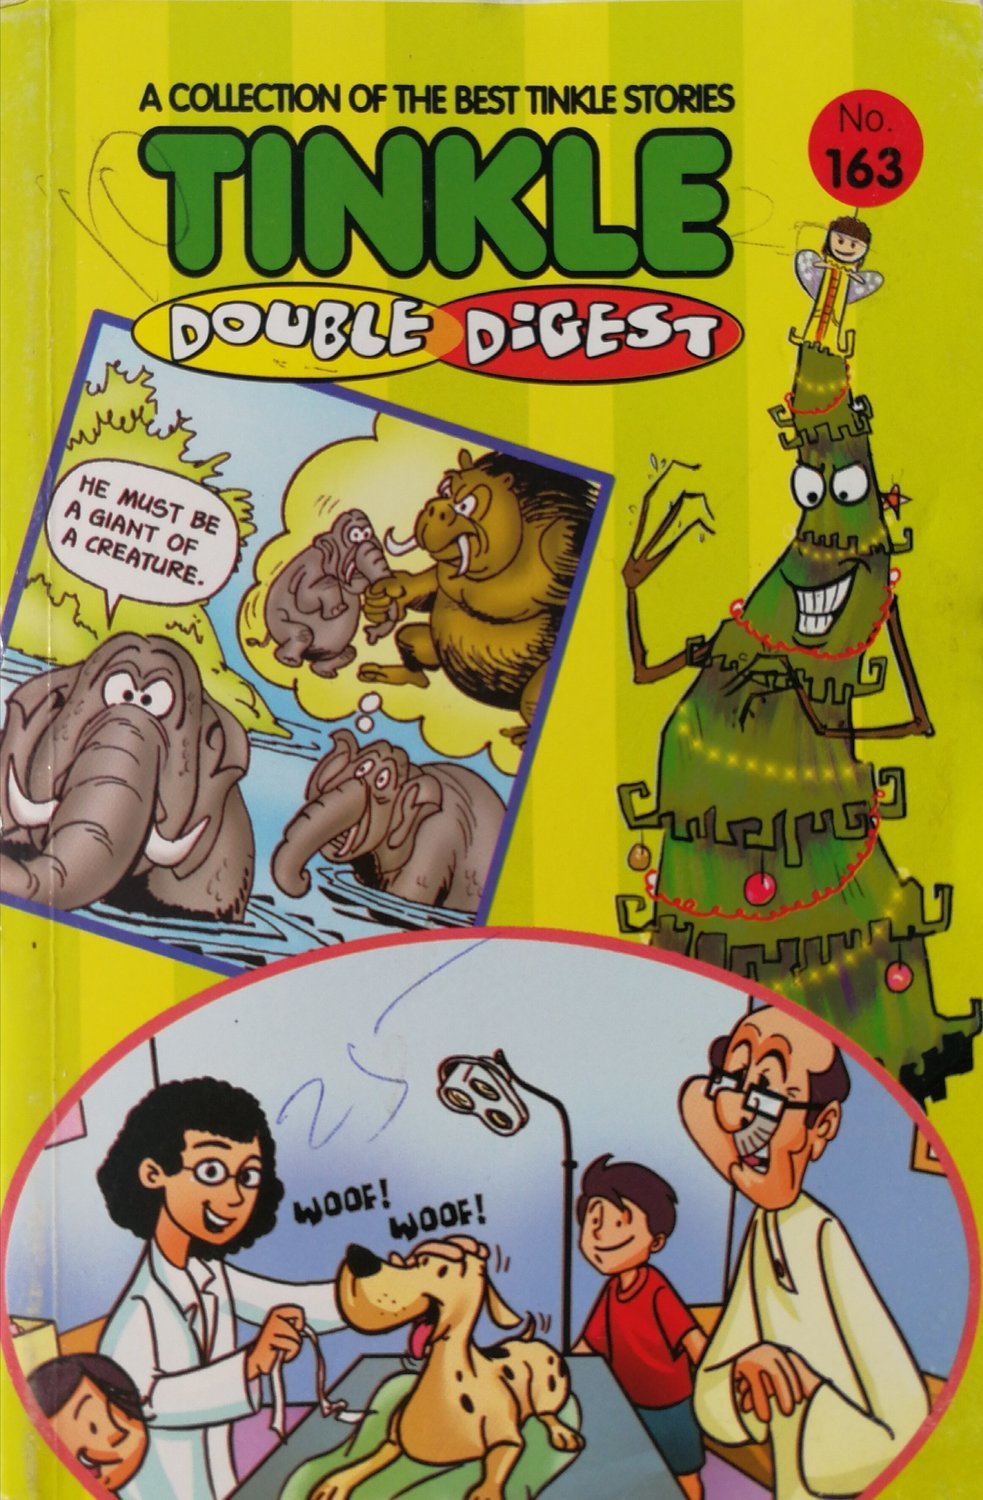 Tinkle Double Digest - No. 163